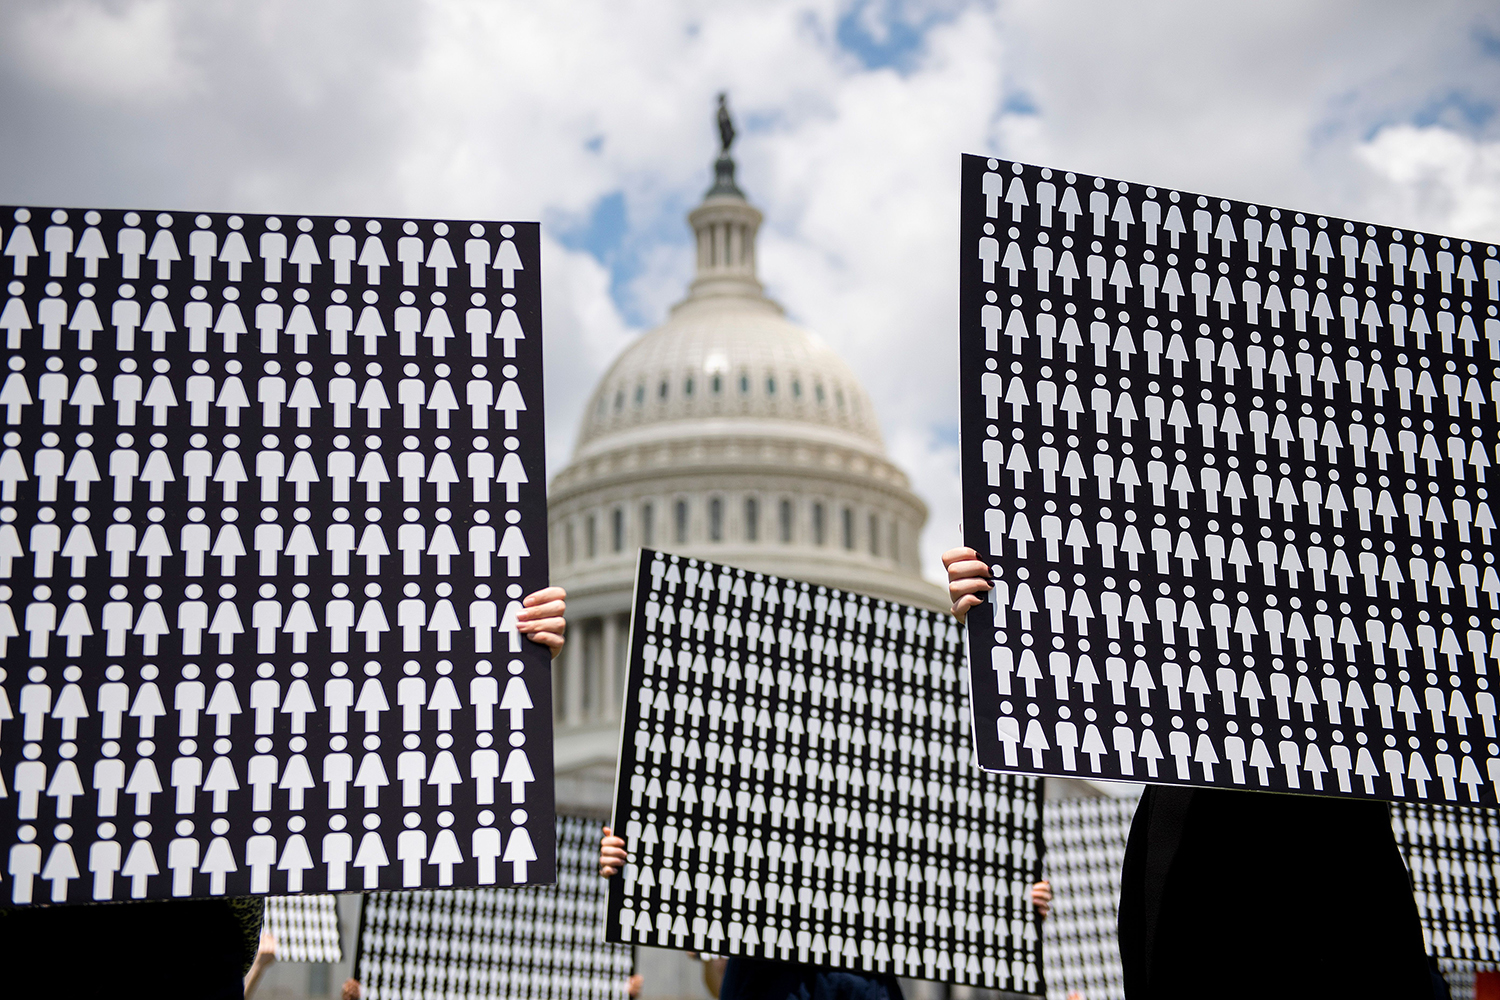 UNITED STATES | Demonstrators hold up placards representing the number of the people who have died due to gun violence during a protest on Capitol Hill in Washington on June 20. JIM WATSON/AFP via Getty Images